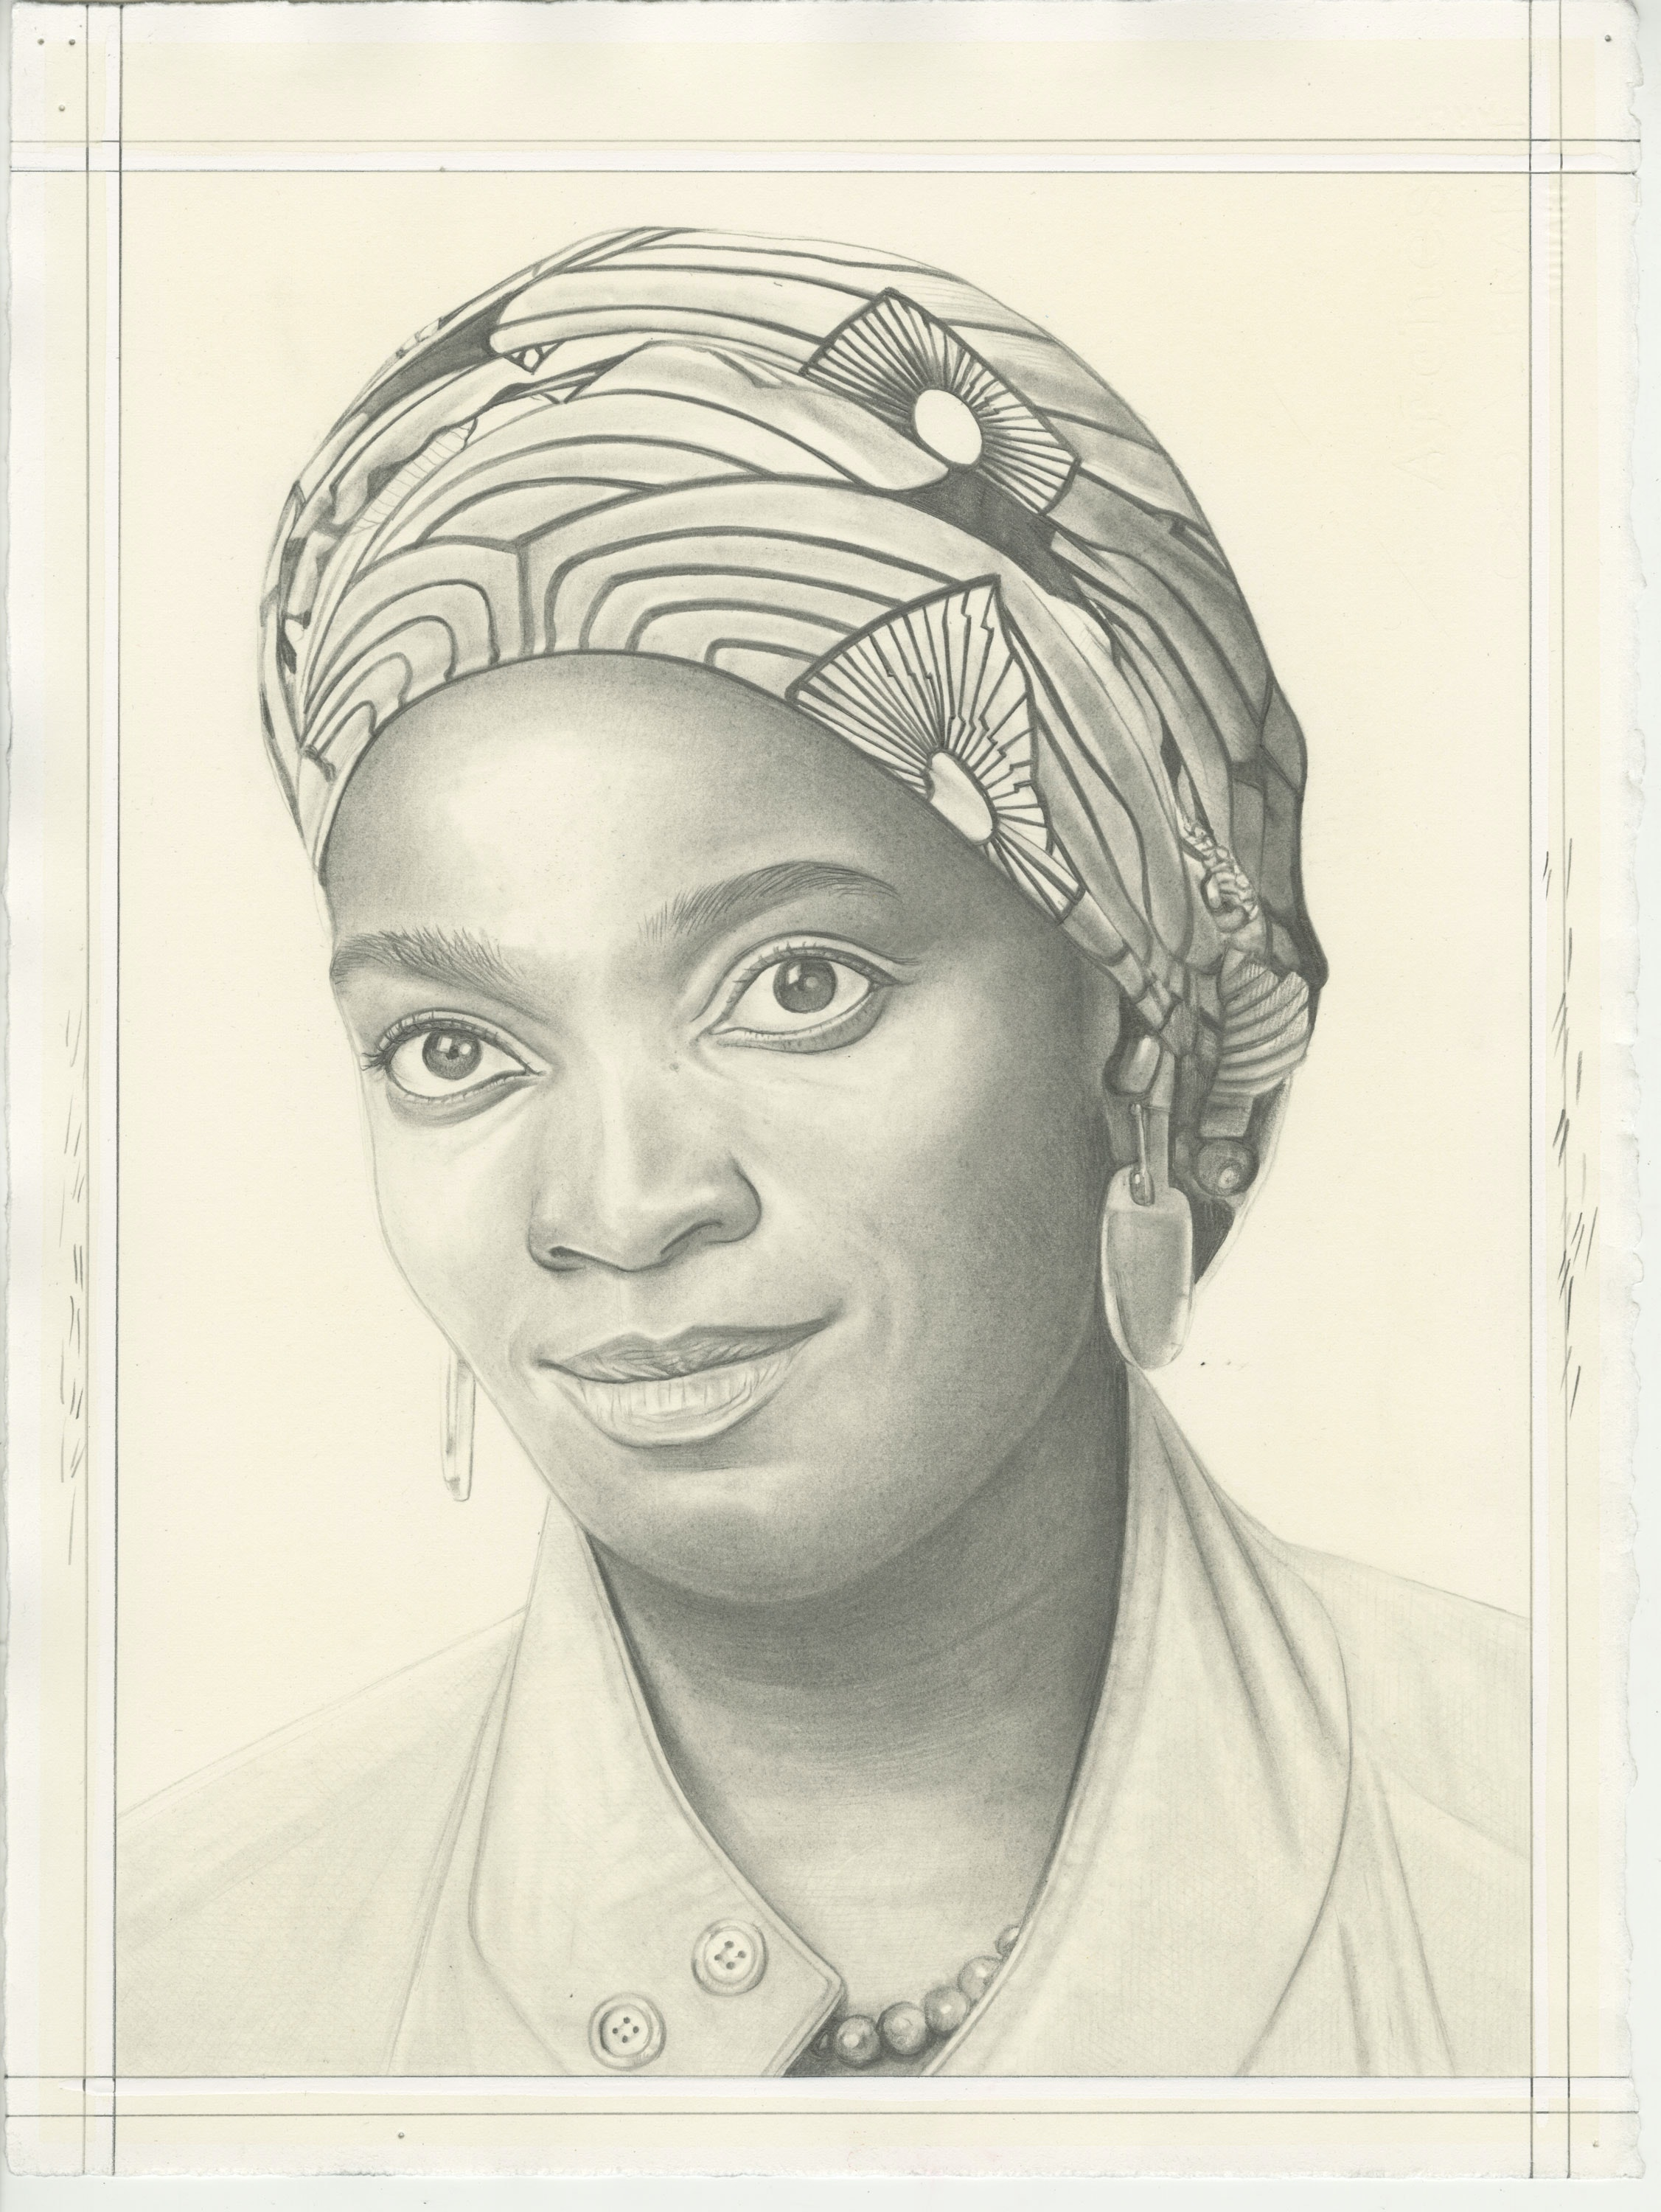 Portrait of Njideka Akunyili Crosby, pencil on paper by Phong H. Bui.